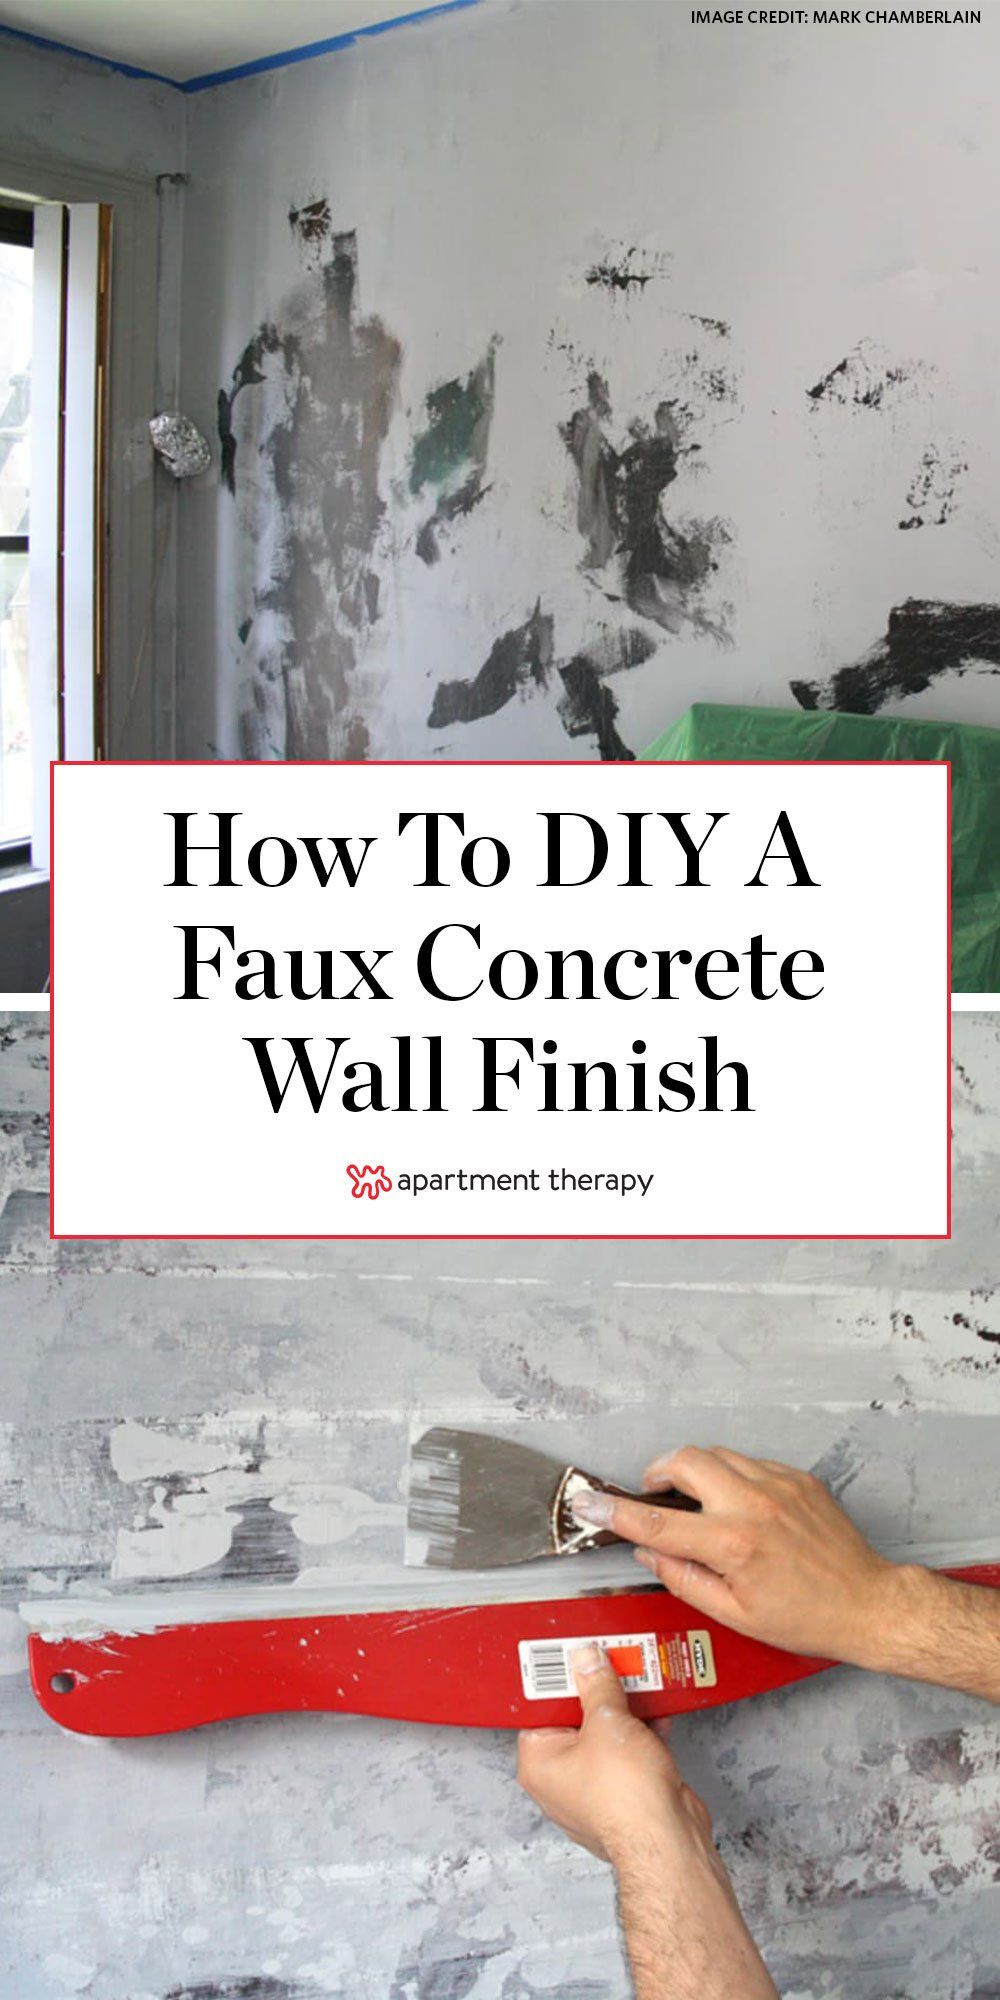 DIY Home Decor: How To Paint a Faux Concrete Wall Finish in 29